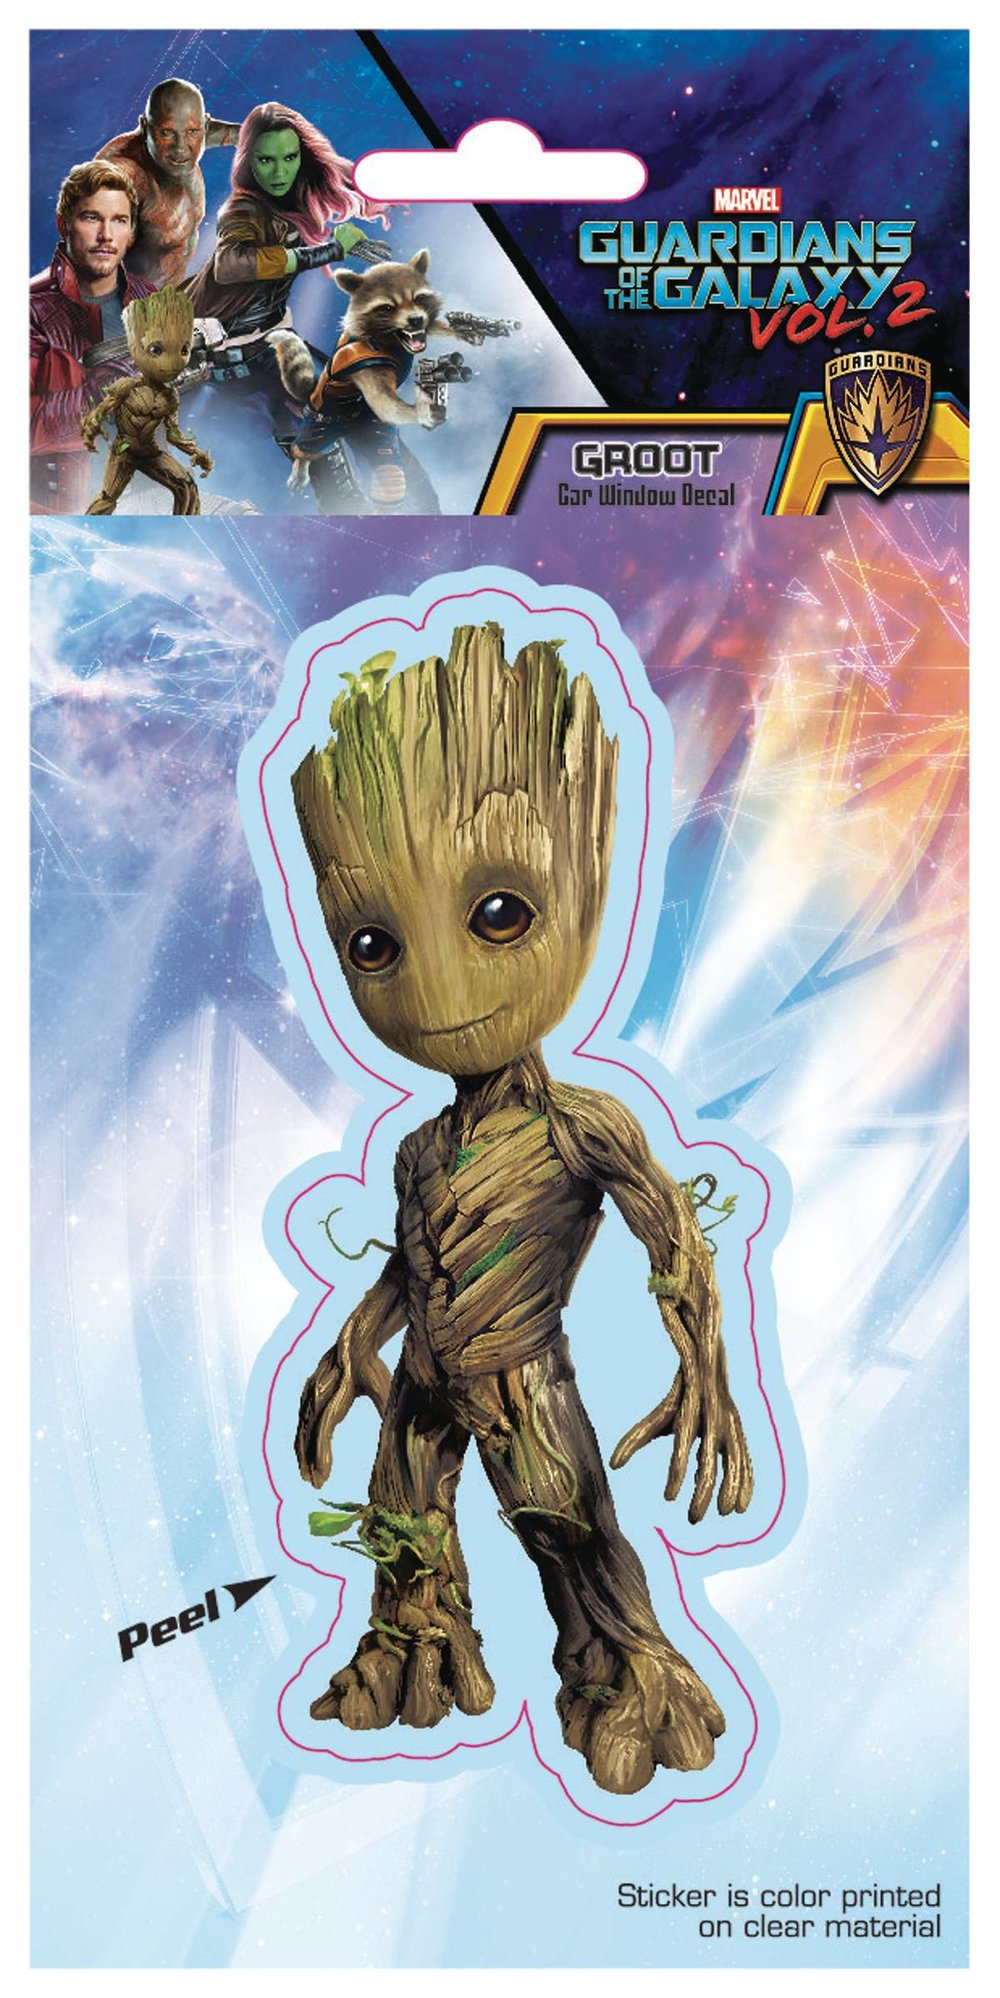 GUARDIANS OF THE GALAXY VOL2 GROOT STANDING DECAL.jpg